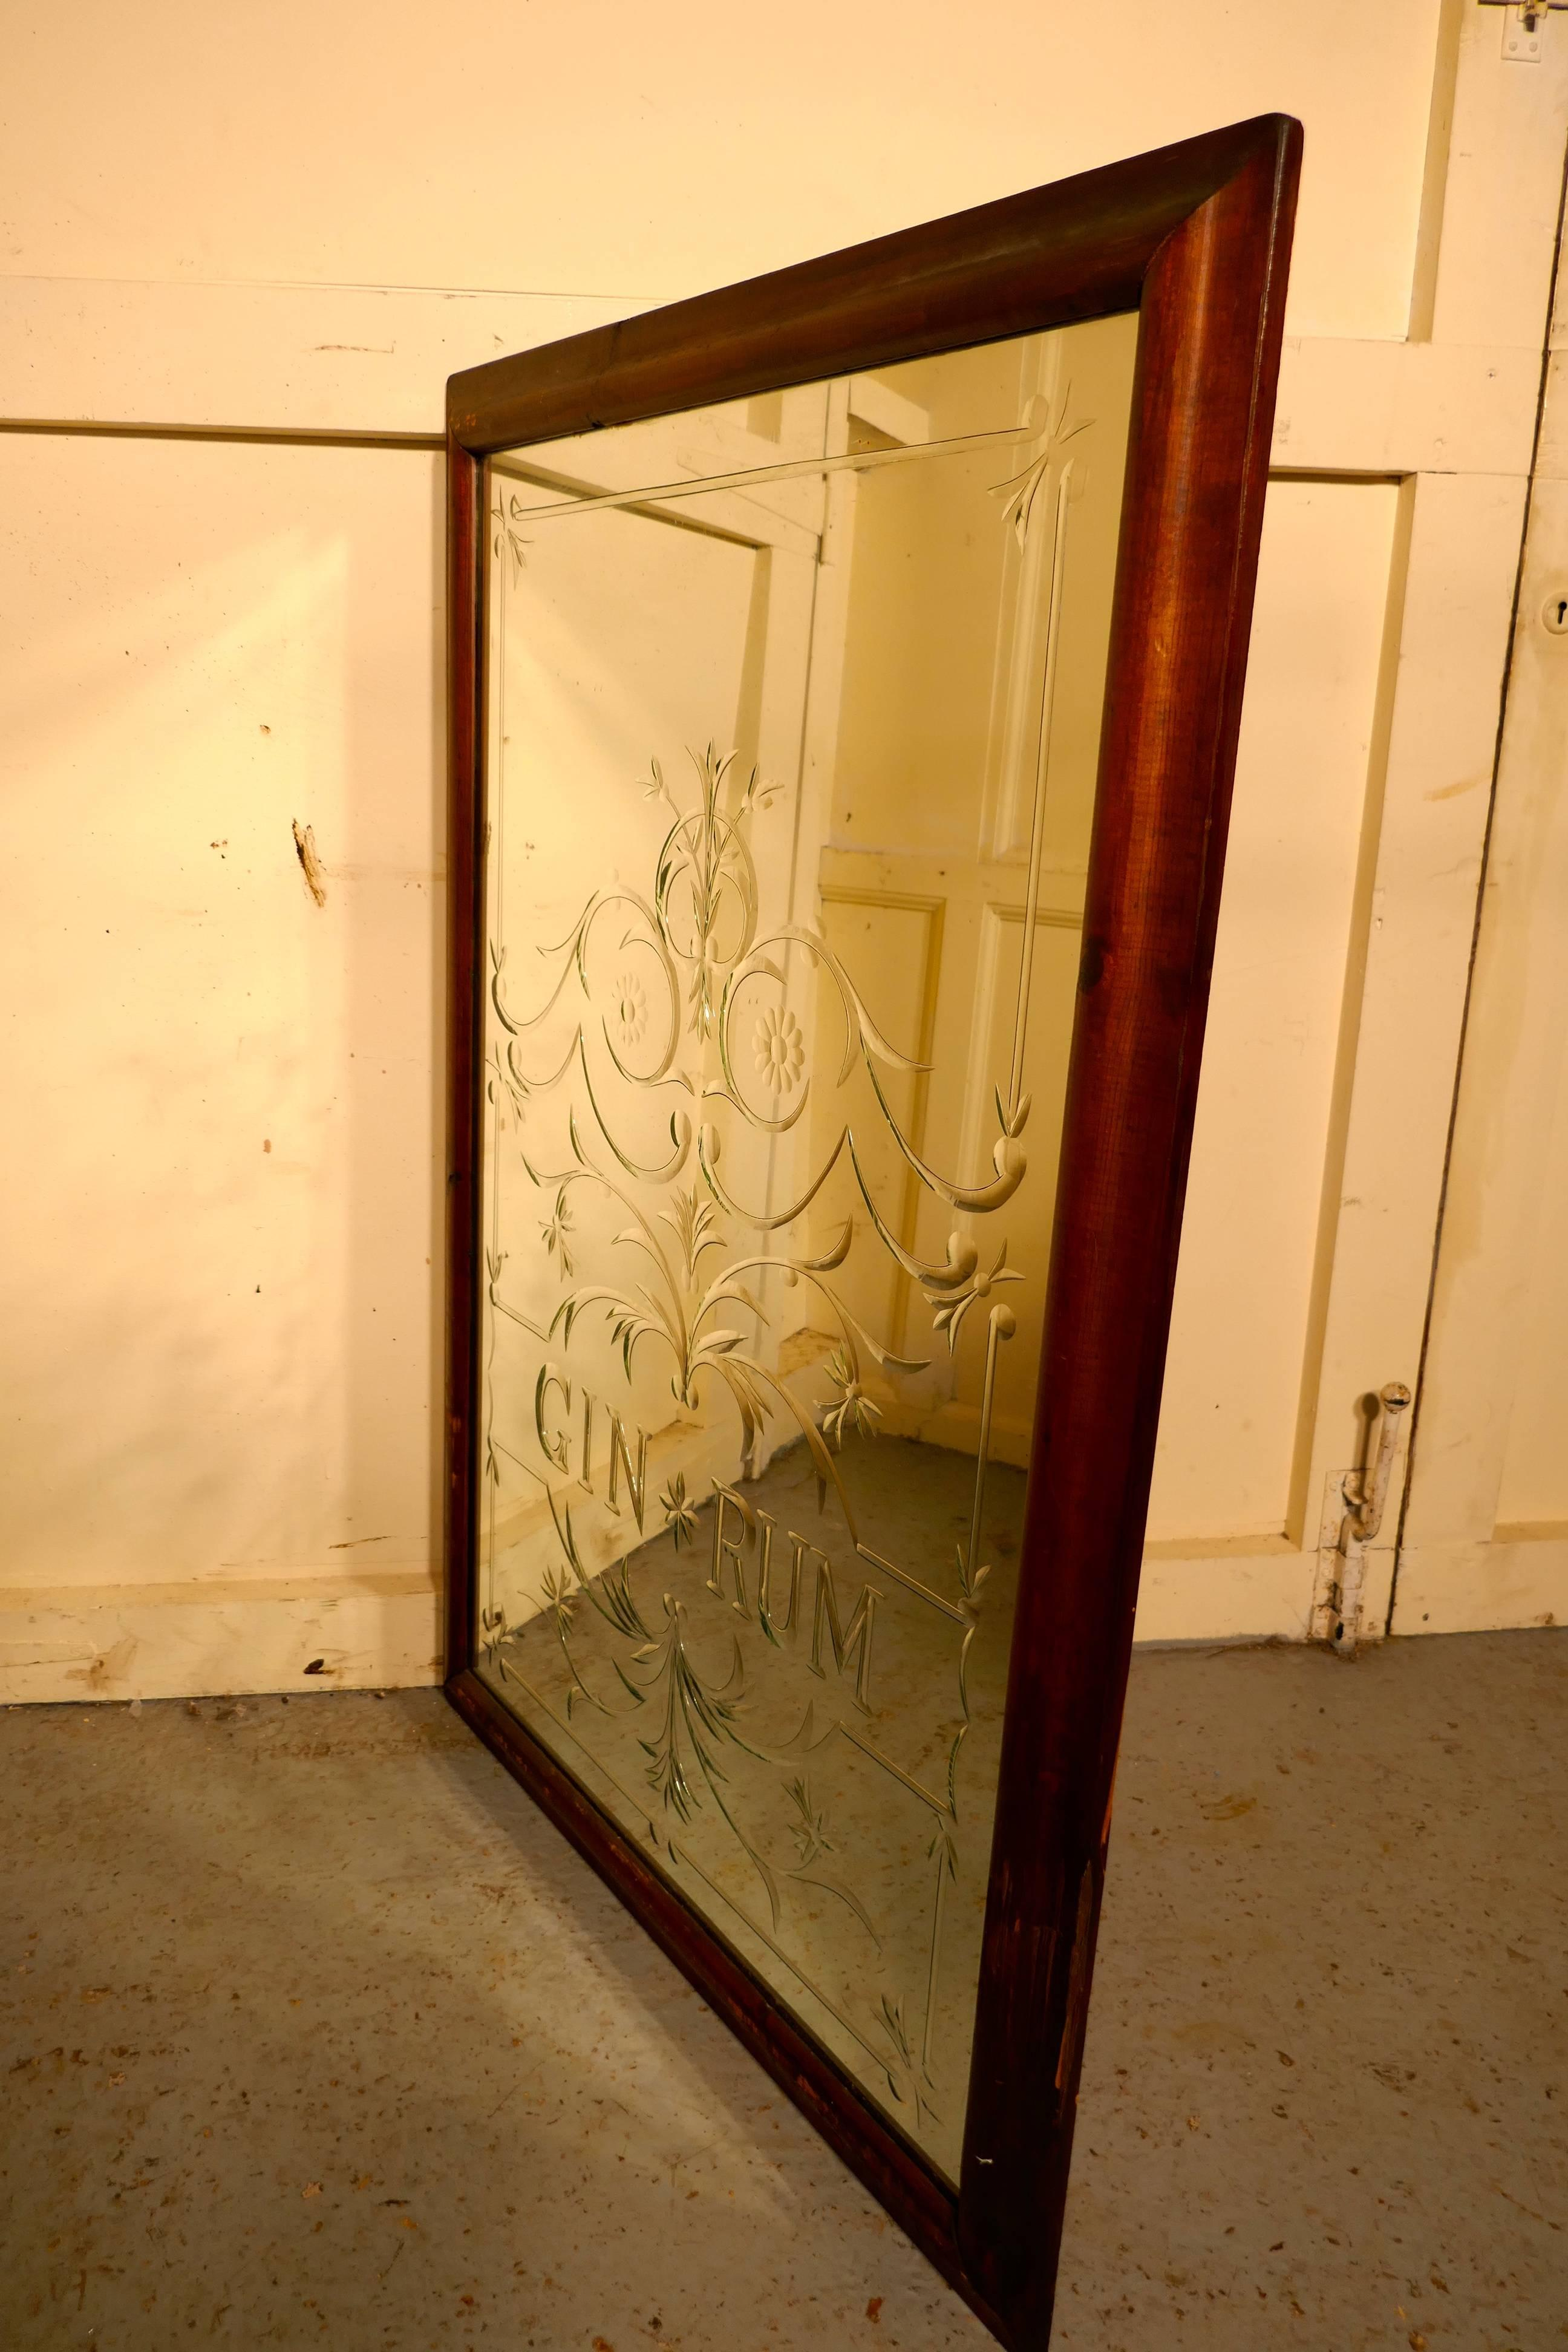 Luxury Etched Wall Mirrors Decorative Vignette - Art & Wall Decor ...